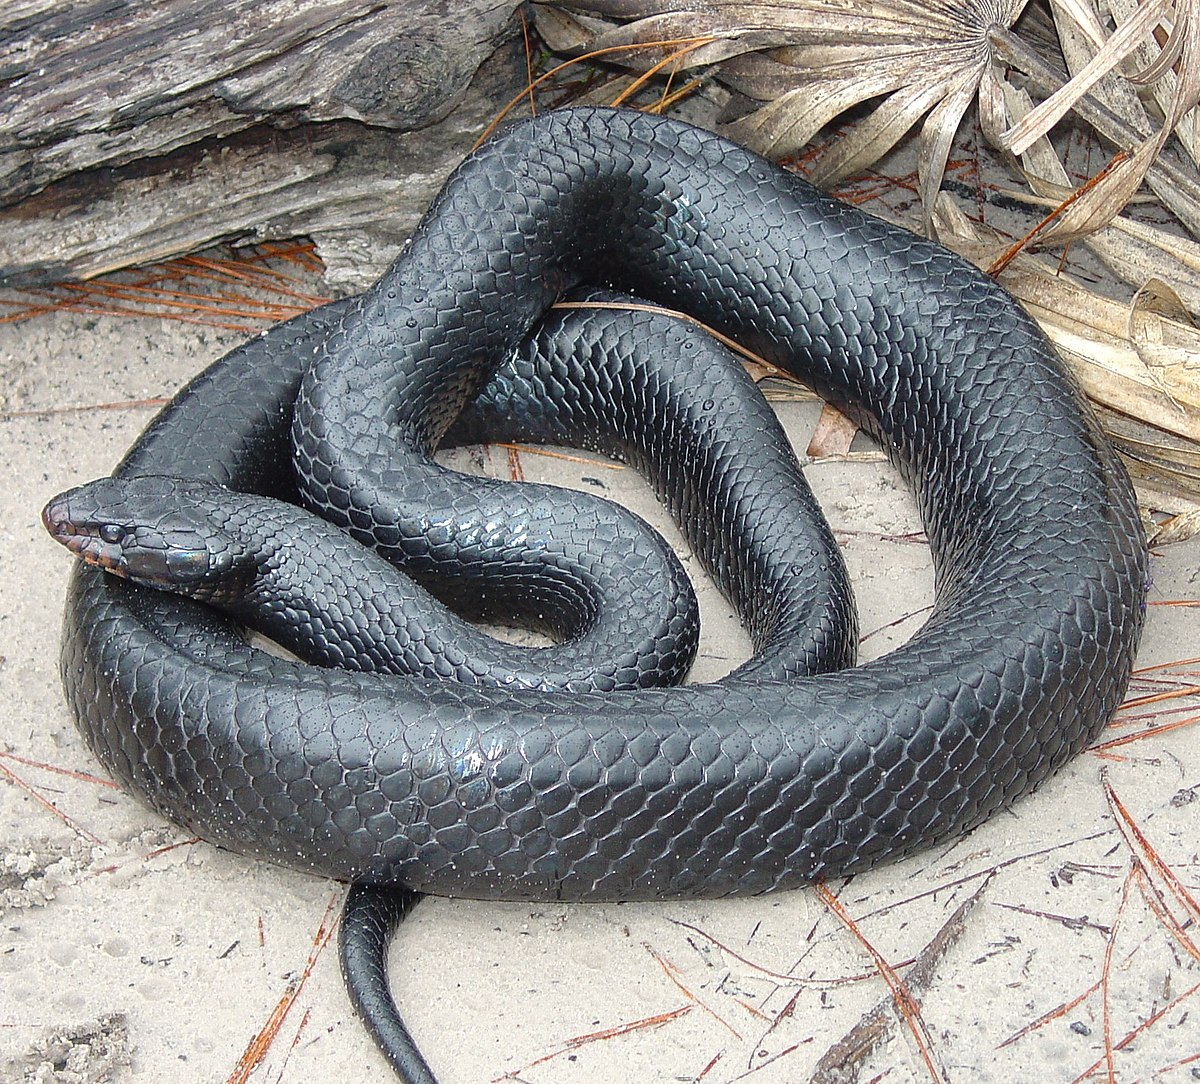 Alabama black snake 5 7